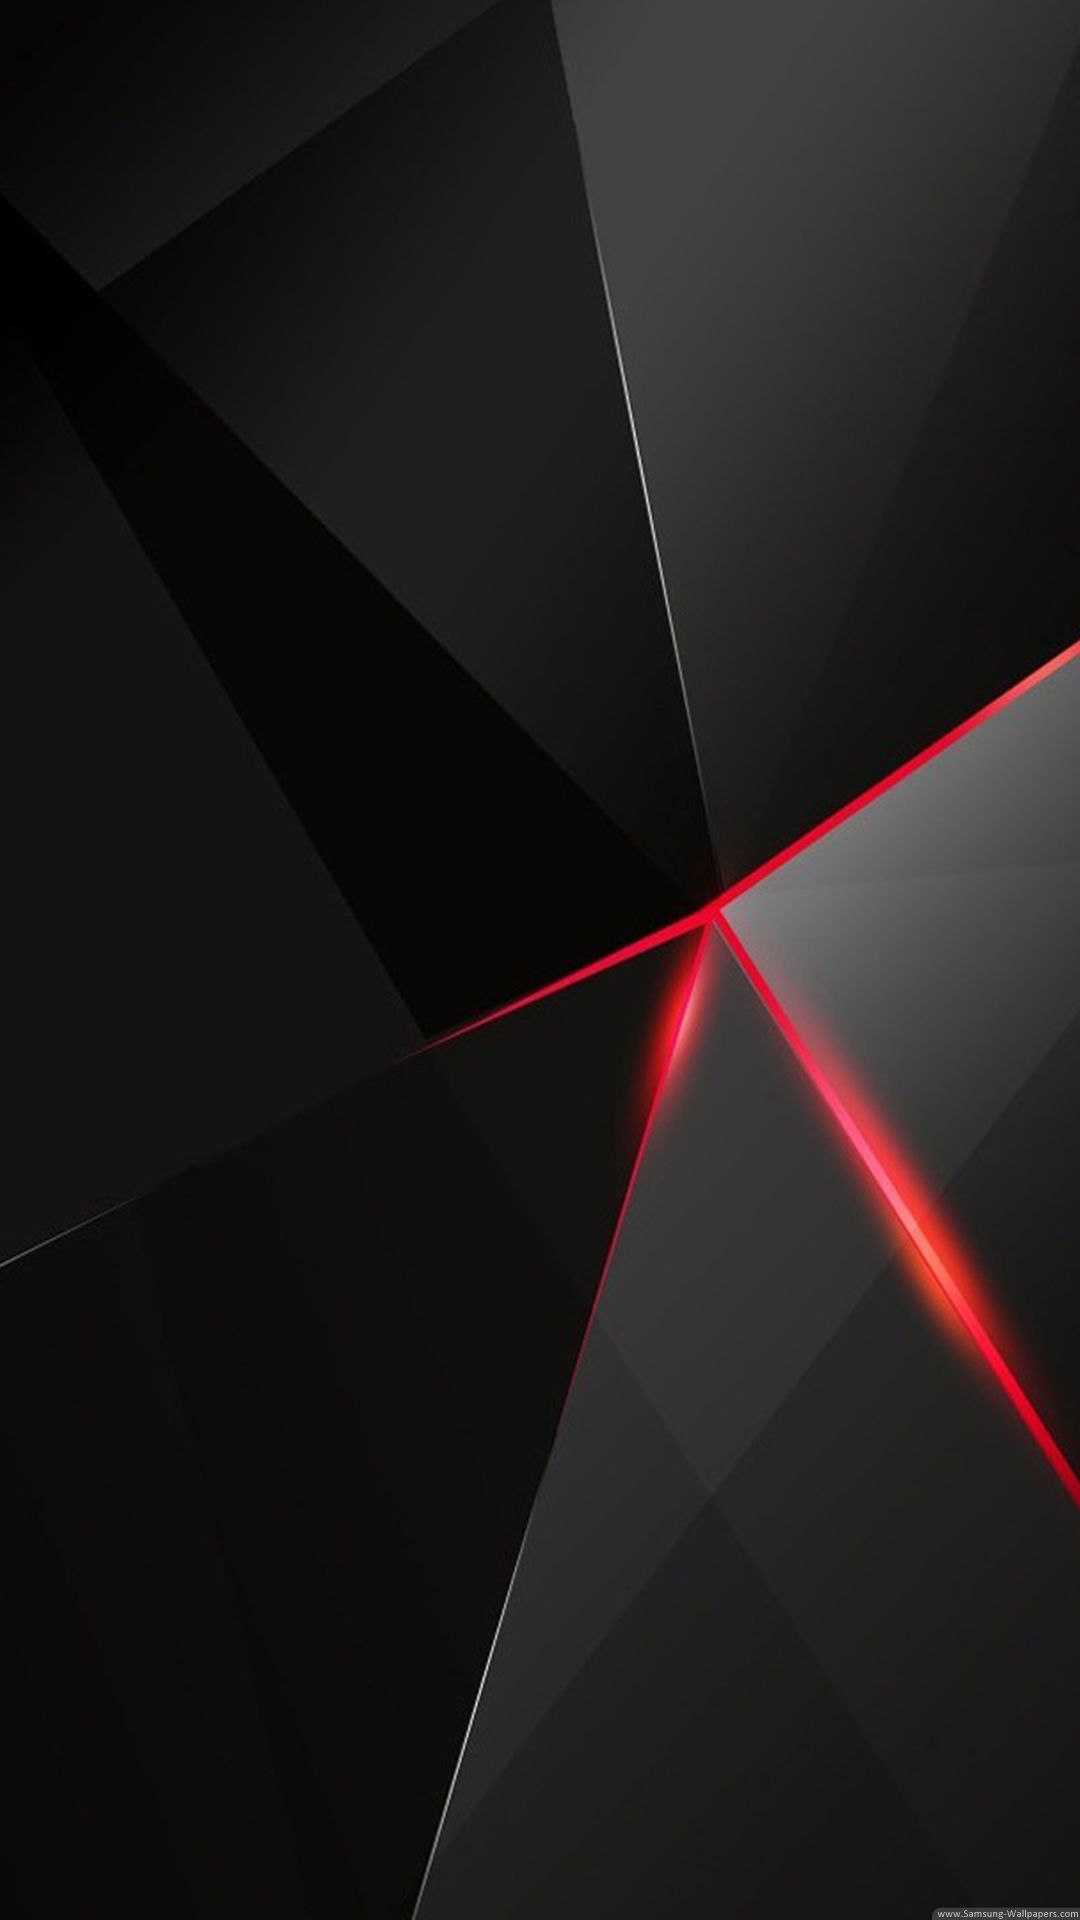 1080x1920 40+ Red Screen Wallpapers - Download at WallpaperBro